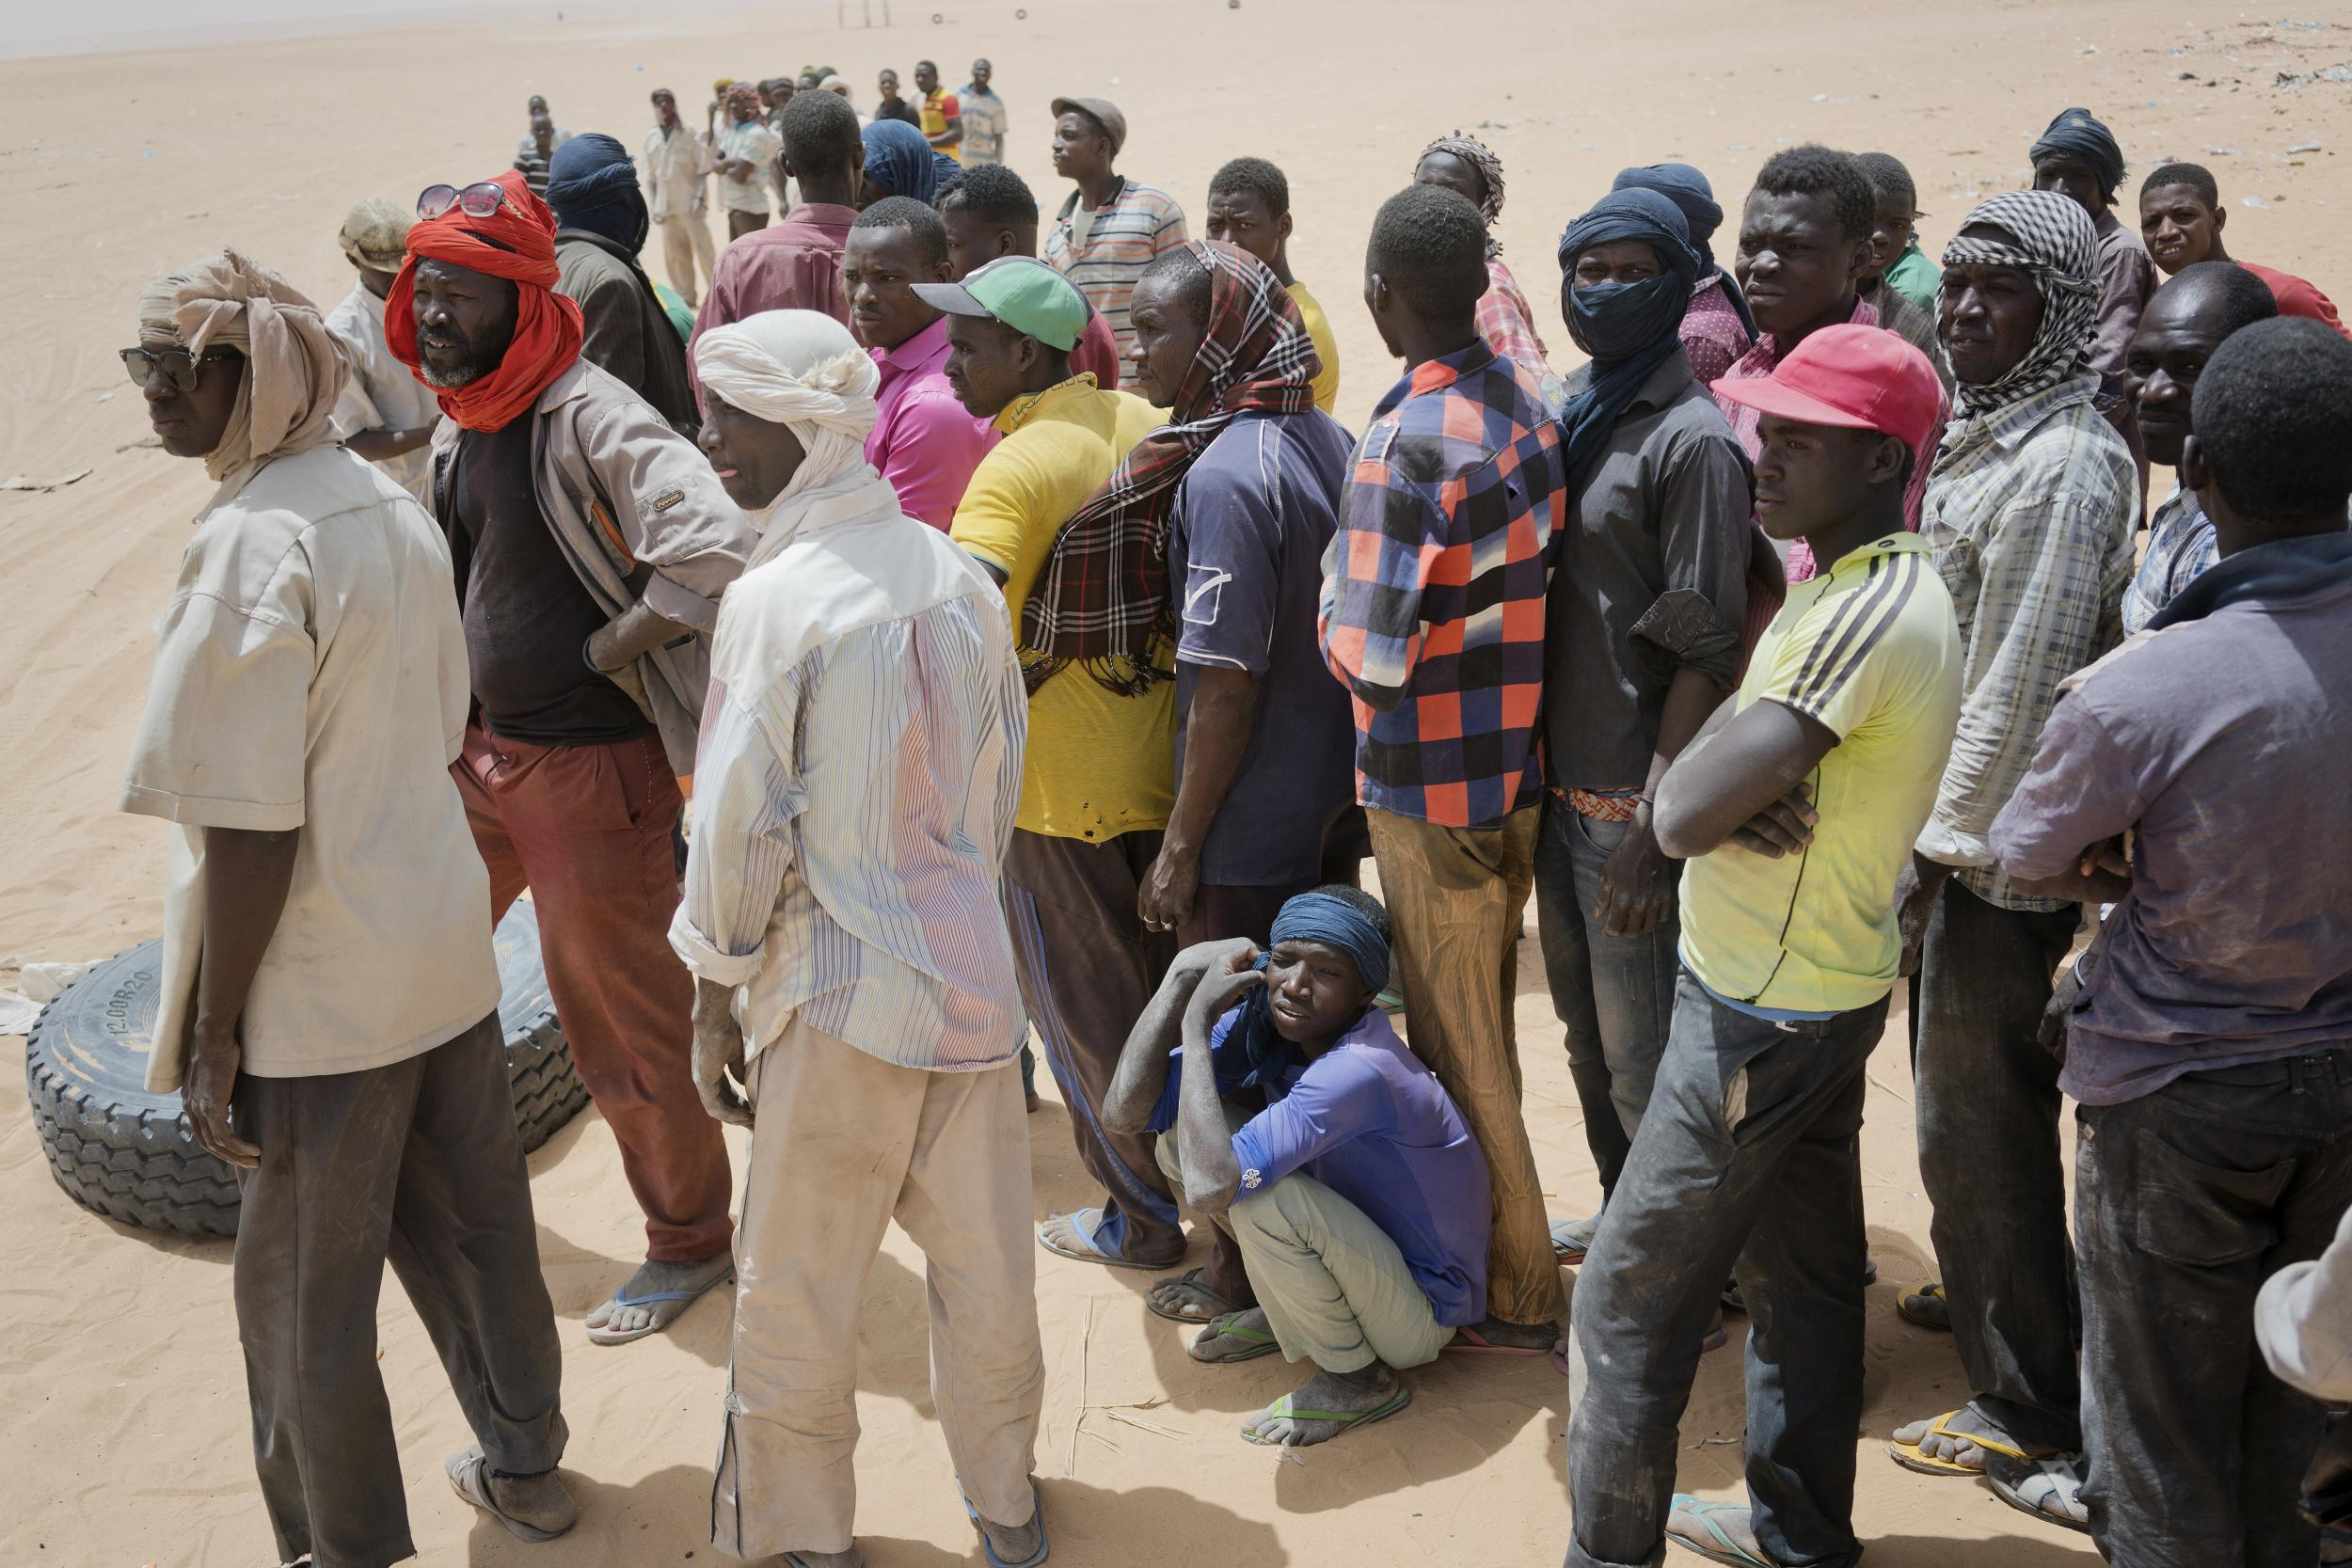 Algeria accused of abandoning more than 13,000 migrants in Sahara Desert without food or water